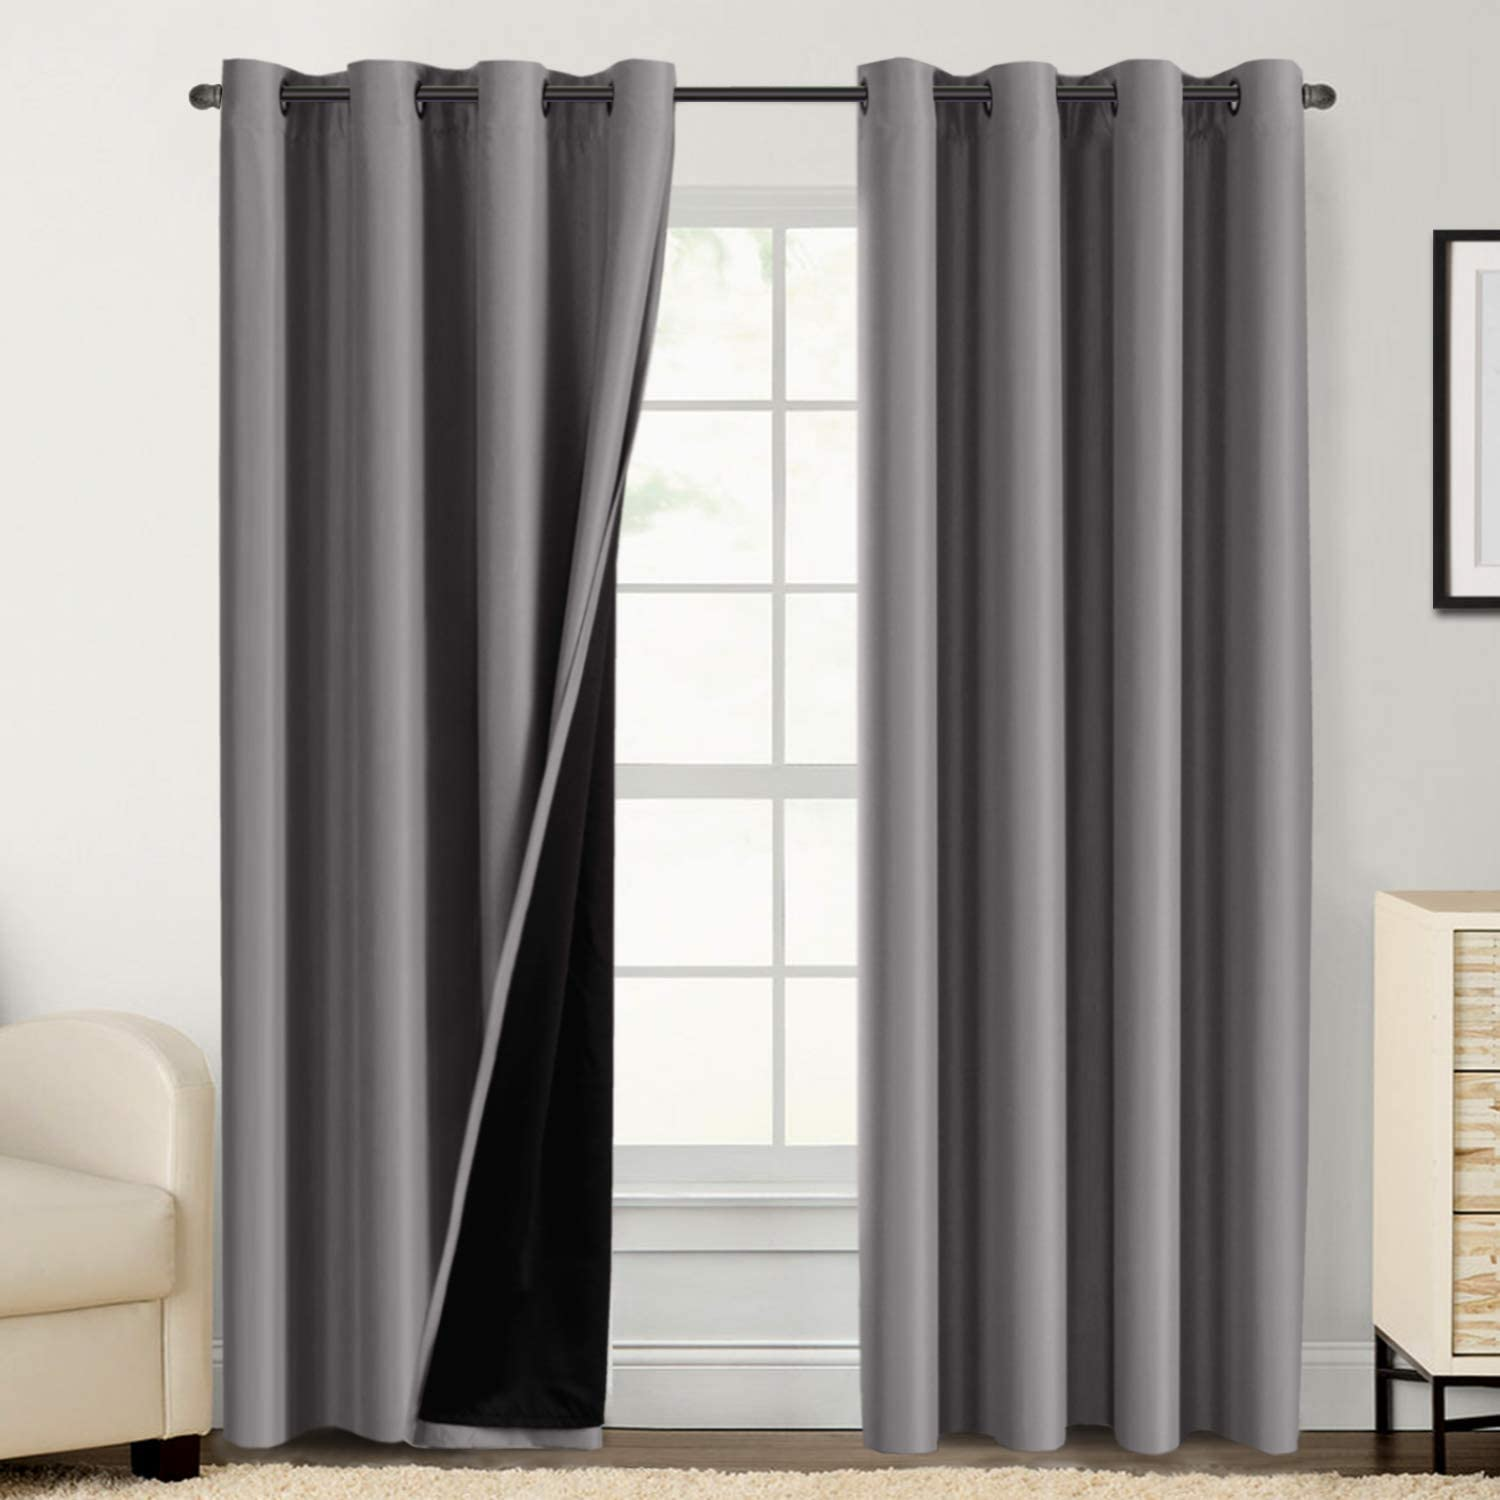 Amazon Com Double Layer 100 Blackout Curtains For Bedroom 84 Inches Long Thermal Insulated Lined Curtains For Living Room Full Light Blocking Energy Saving Grommet Drapes Draperies 2 Panels Grey Kitchen Dining